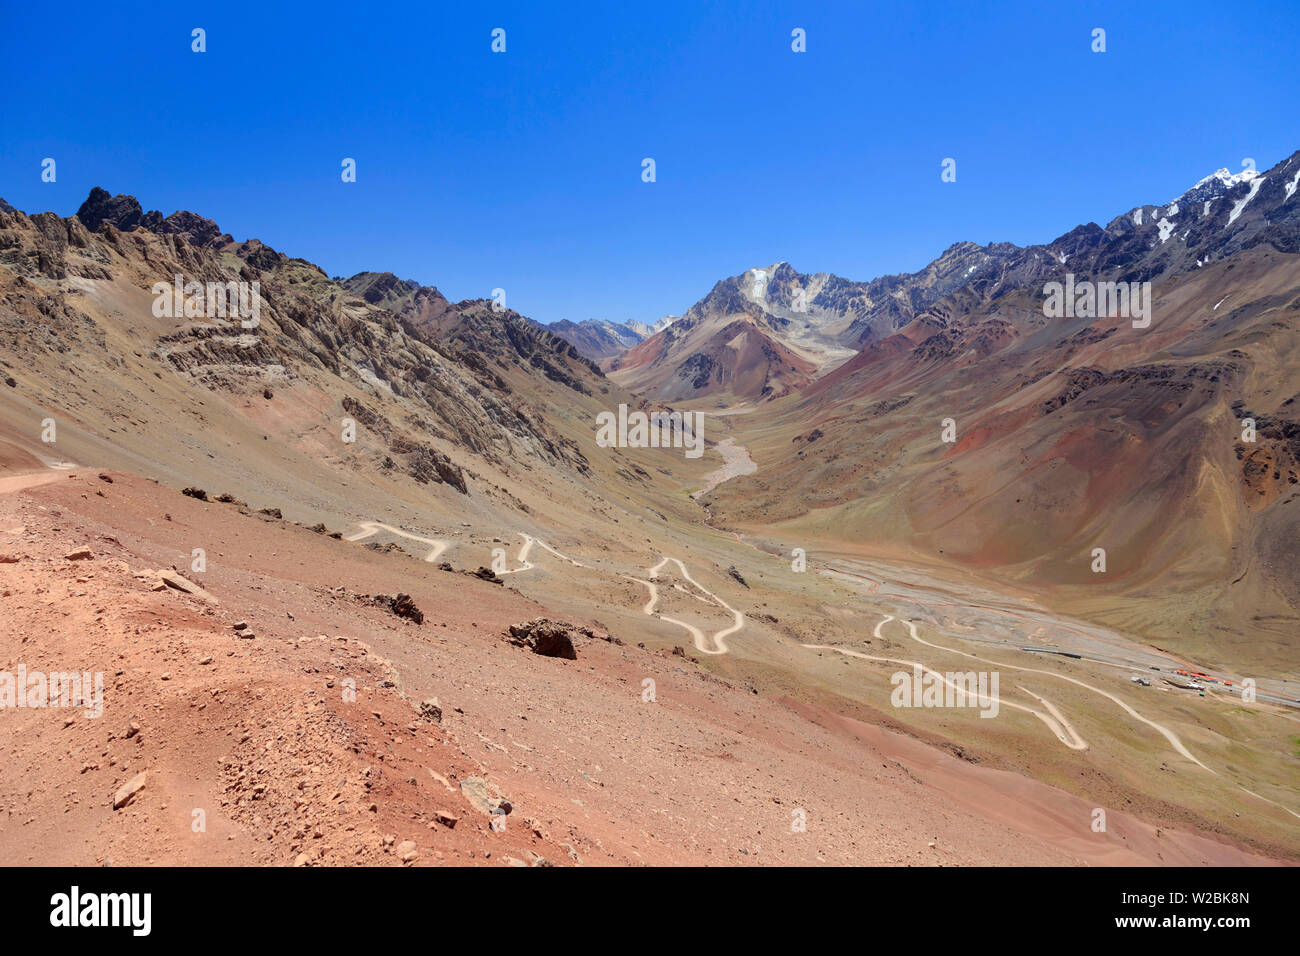 Argentina, Mendoza, Ruta 7, the winding road on the way to Christ the Redeemer Staute, Border between Argentina and Chile - Stock Image